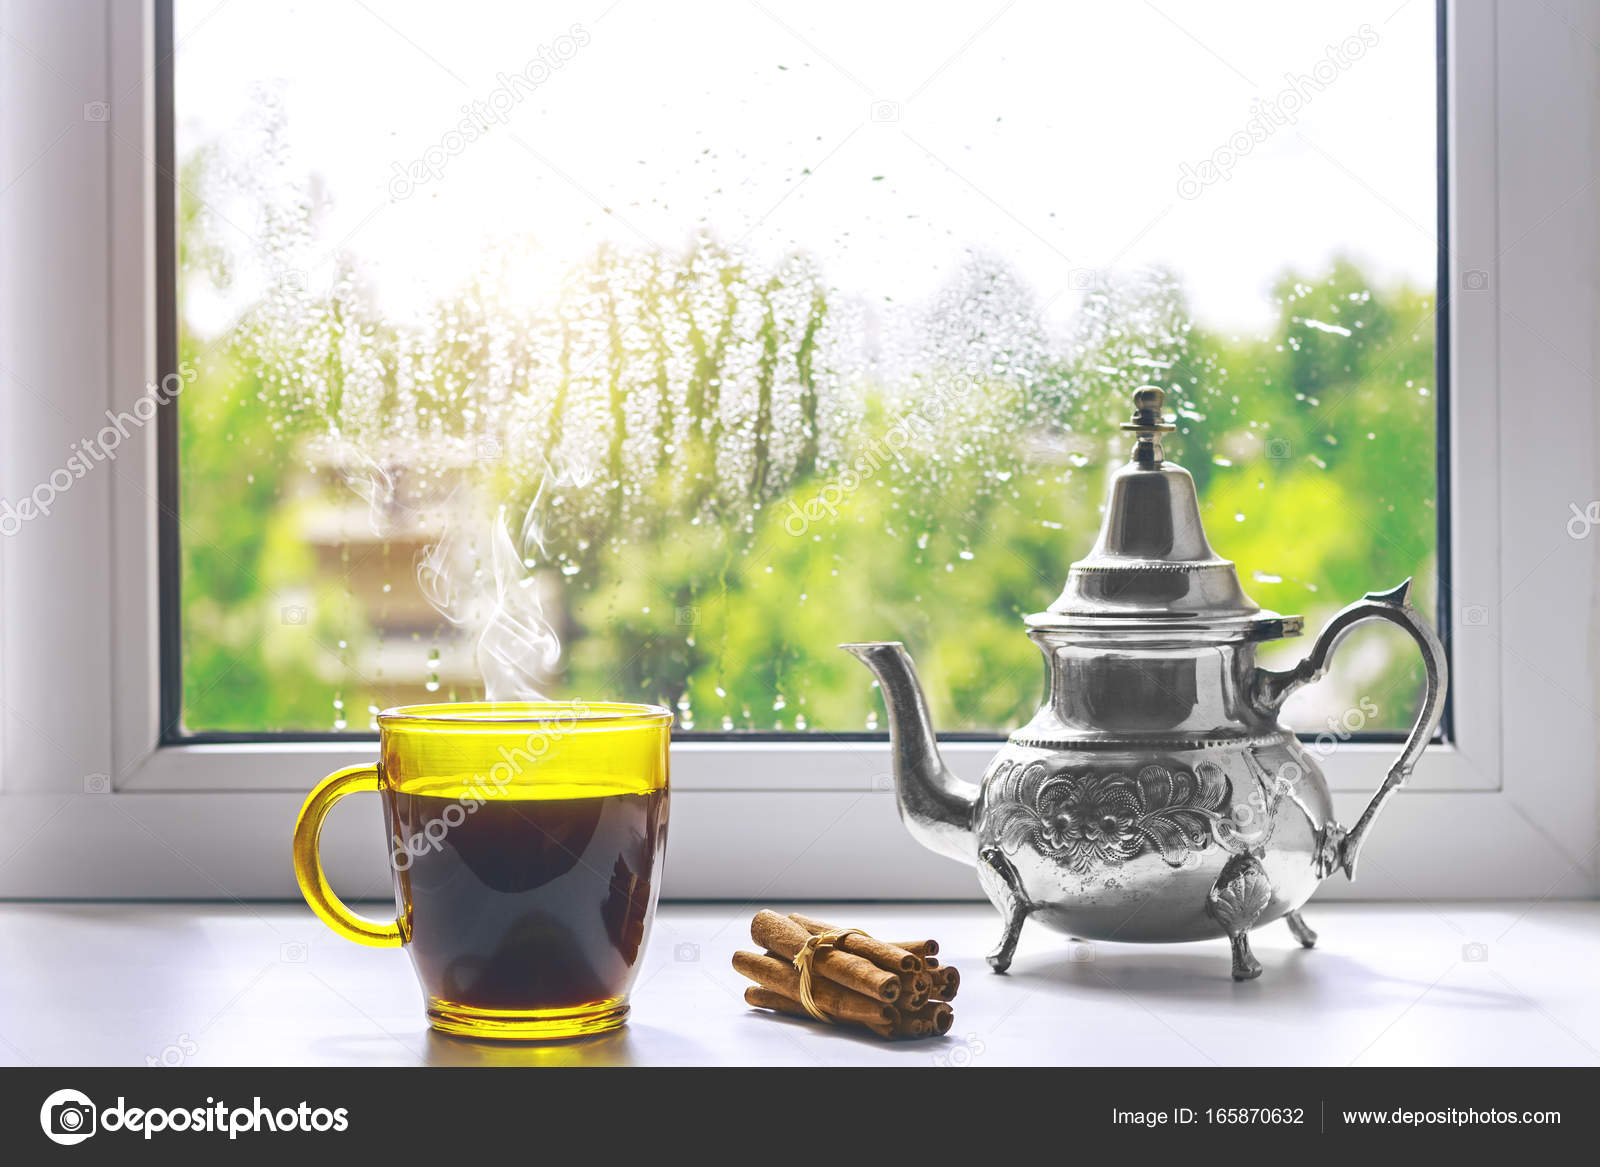 Lovely Cup Of Hot Coffee On The Windowsill. Outside The Window The Rain. U2014 Photo  By IgorBukhlin